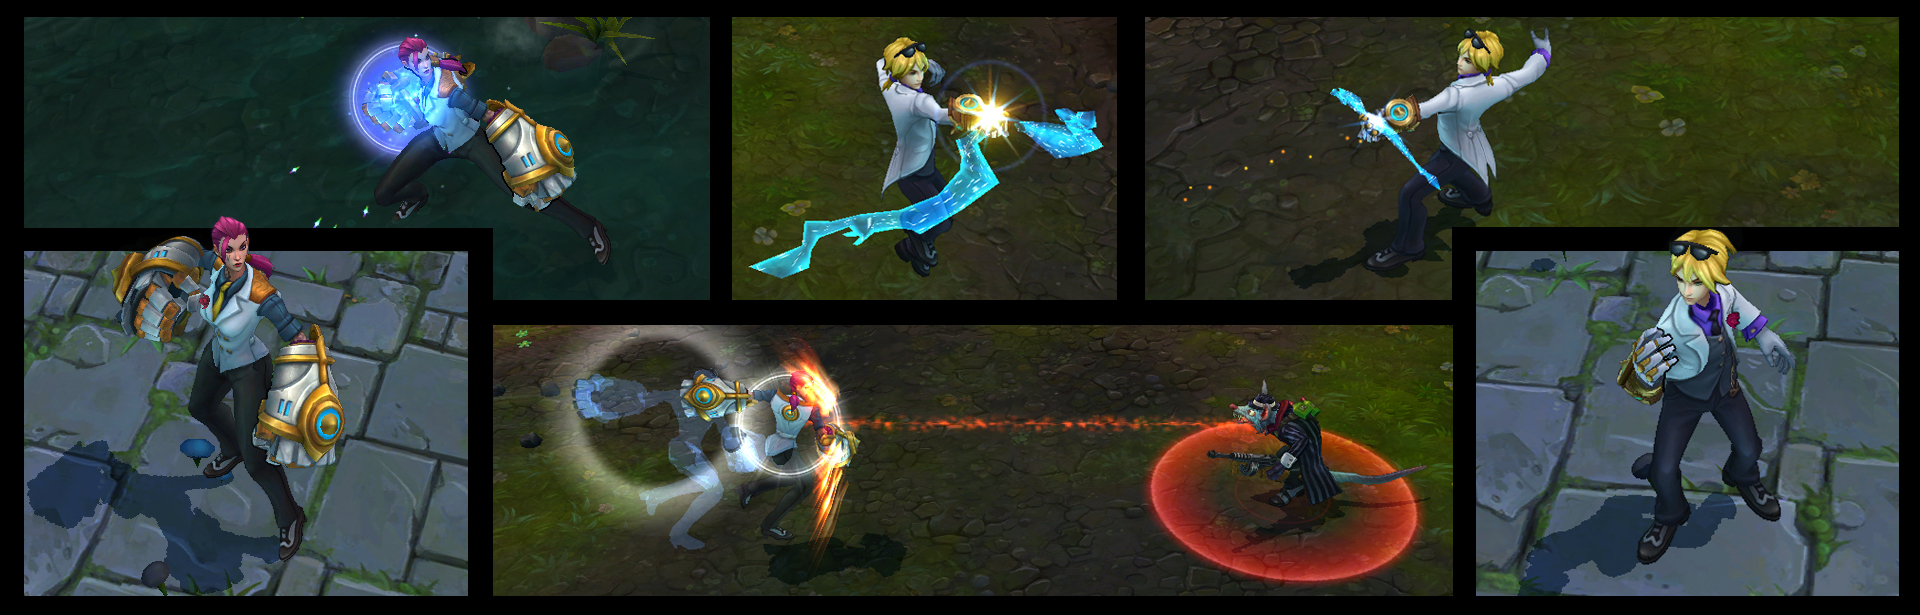 Ezreal and Vi Debonair Screenshots.jpg